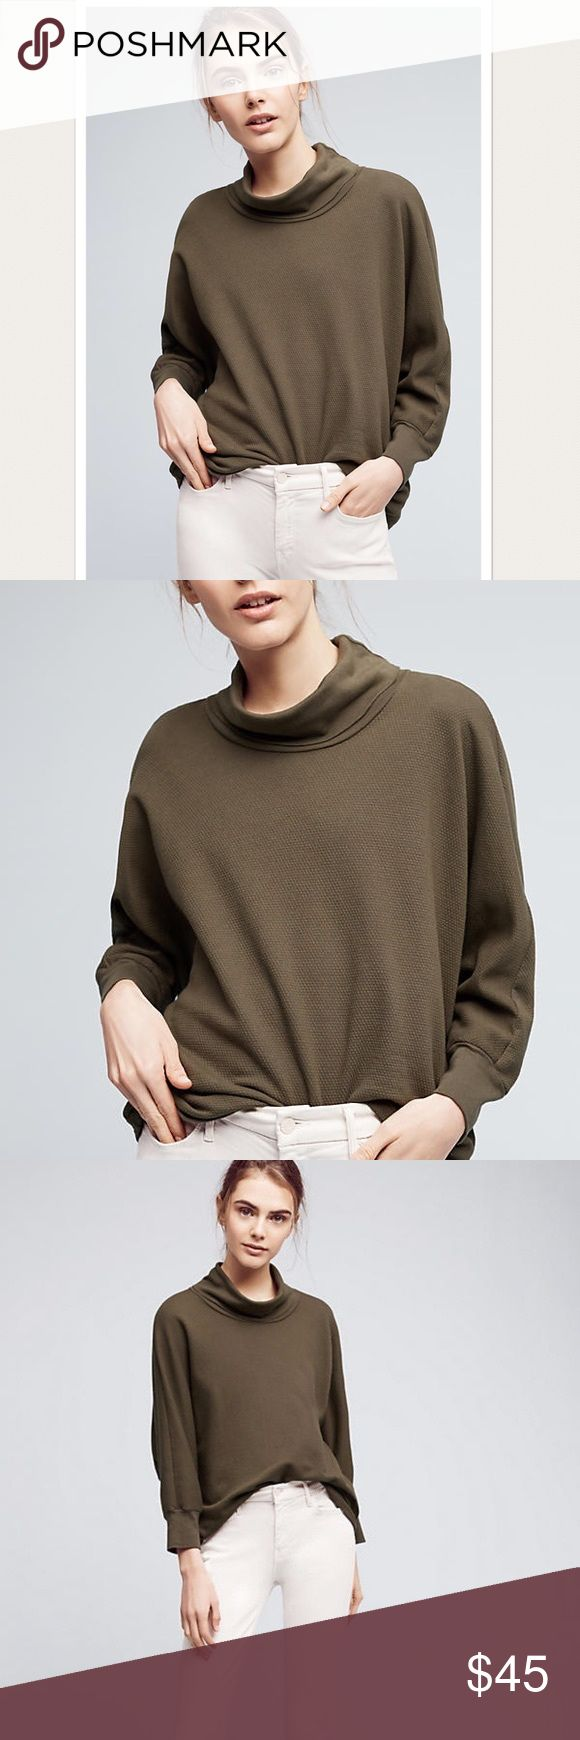 NWT Anthropologie Bente Fleece Pullover Style No. 4112090625889 ; #117 Master T-shirt maker Moise Emquies presents his take on casual weekend wear with Stateside, a collection of so-soft separates. Each American-made piece was meticulously cut and crafted from premium jersey fabric, giving standard relaxation a refreshingly luxe update. With quality and comfort embedded in every design, each cozy staple is made for seamless transitions from bedroom to brunch. Cotton fleece Bat sleeves…